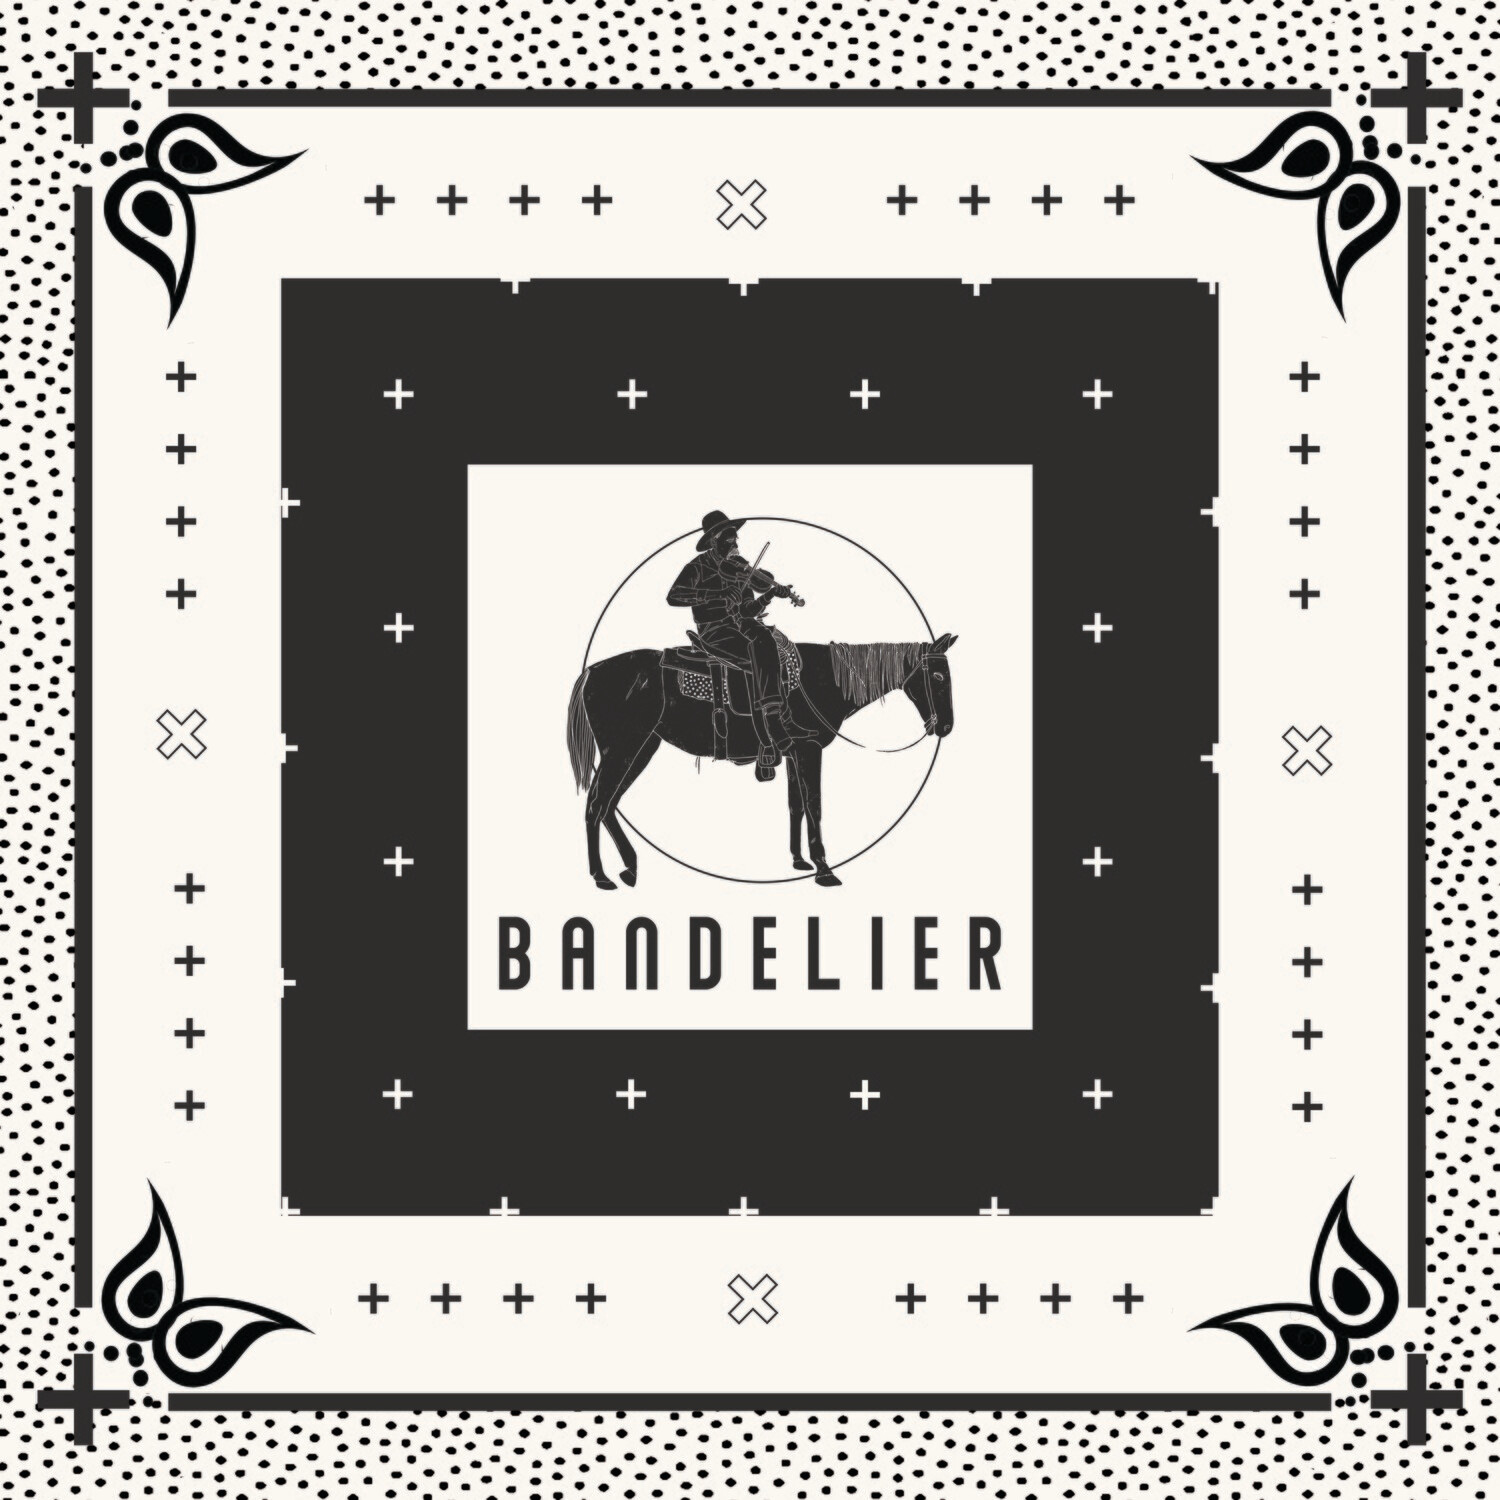 Bandelier Bandana (Coming Soon)